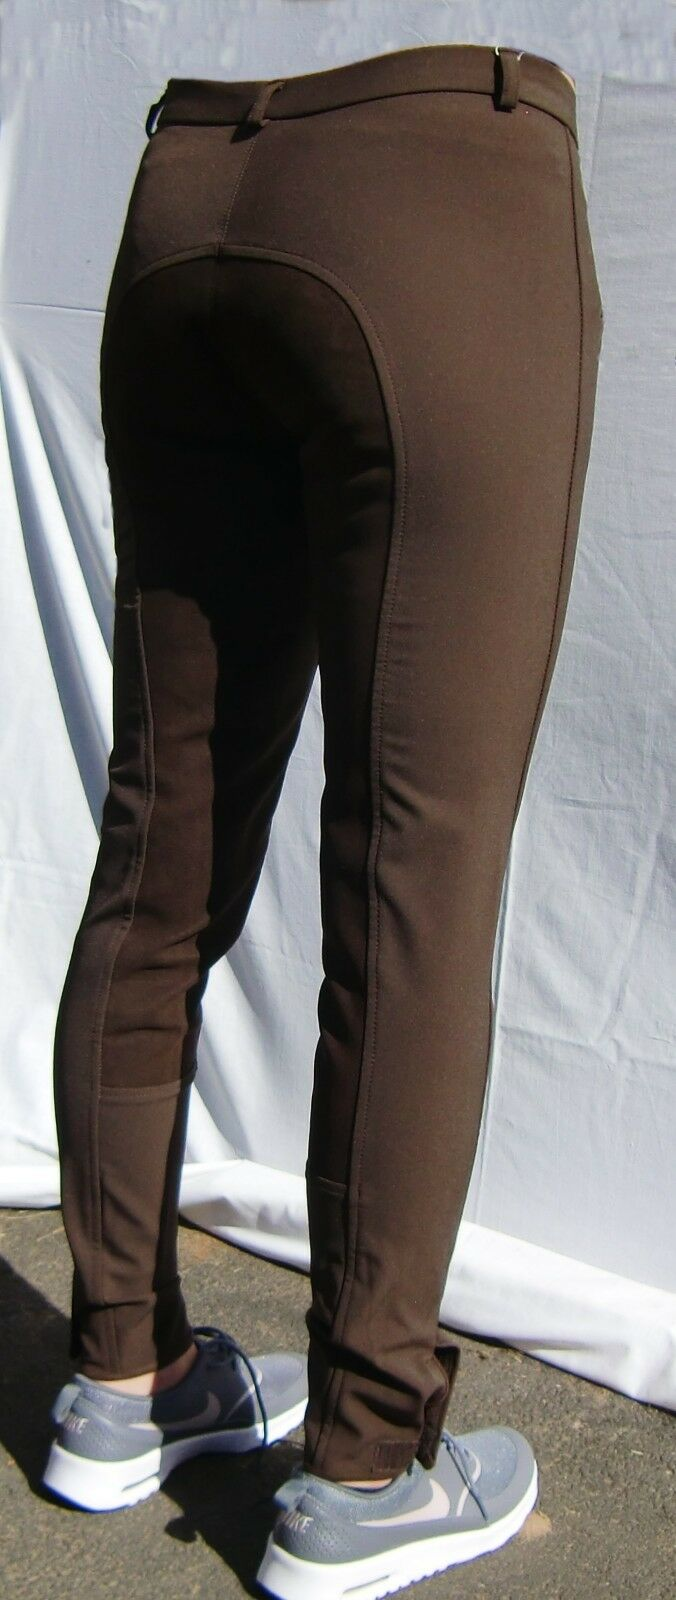 Pfiff Women's Riding Pants SP Full Seat Women Equestrian Trousers Brown 36-44